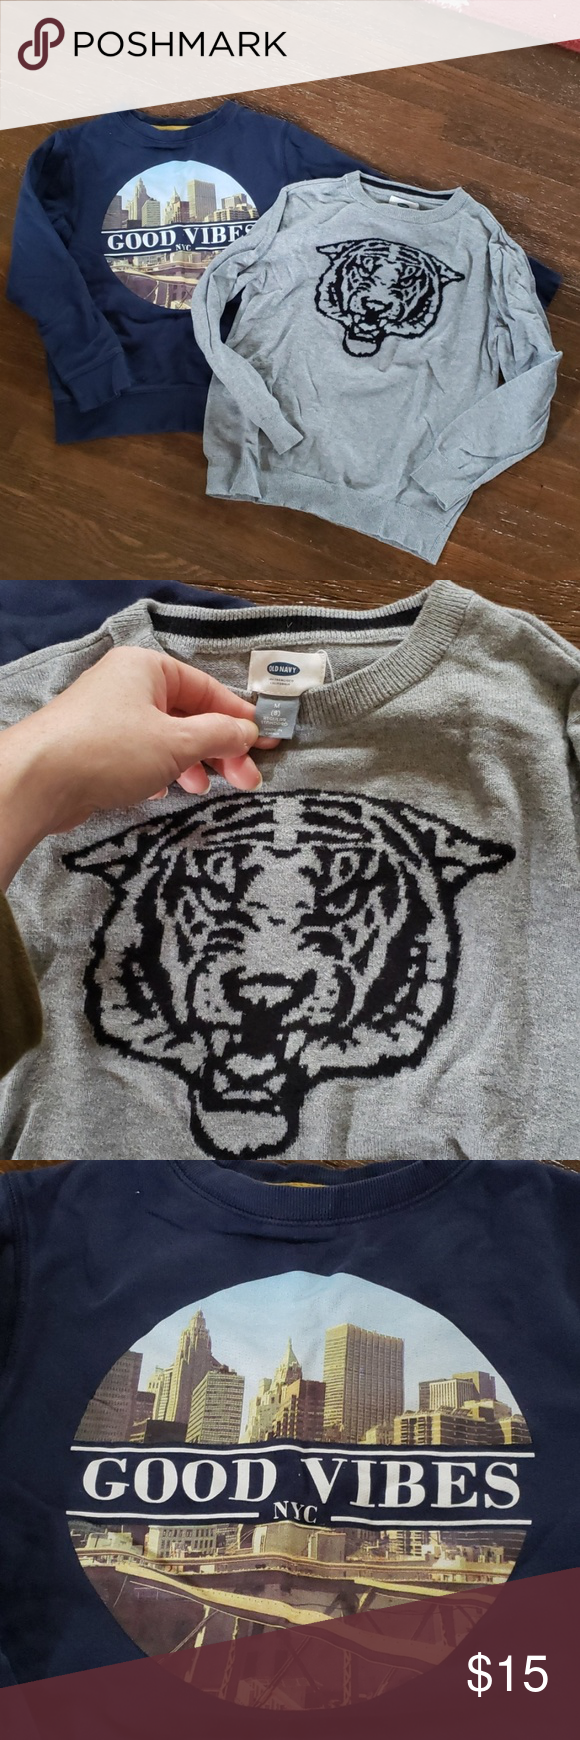 a17438b25 Cool Kids Sweatshirt & Sweater Tiger sweater by Old Navy. Size 8. In  excellent